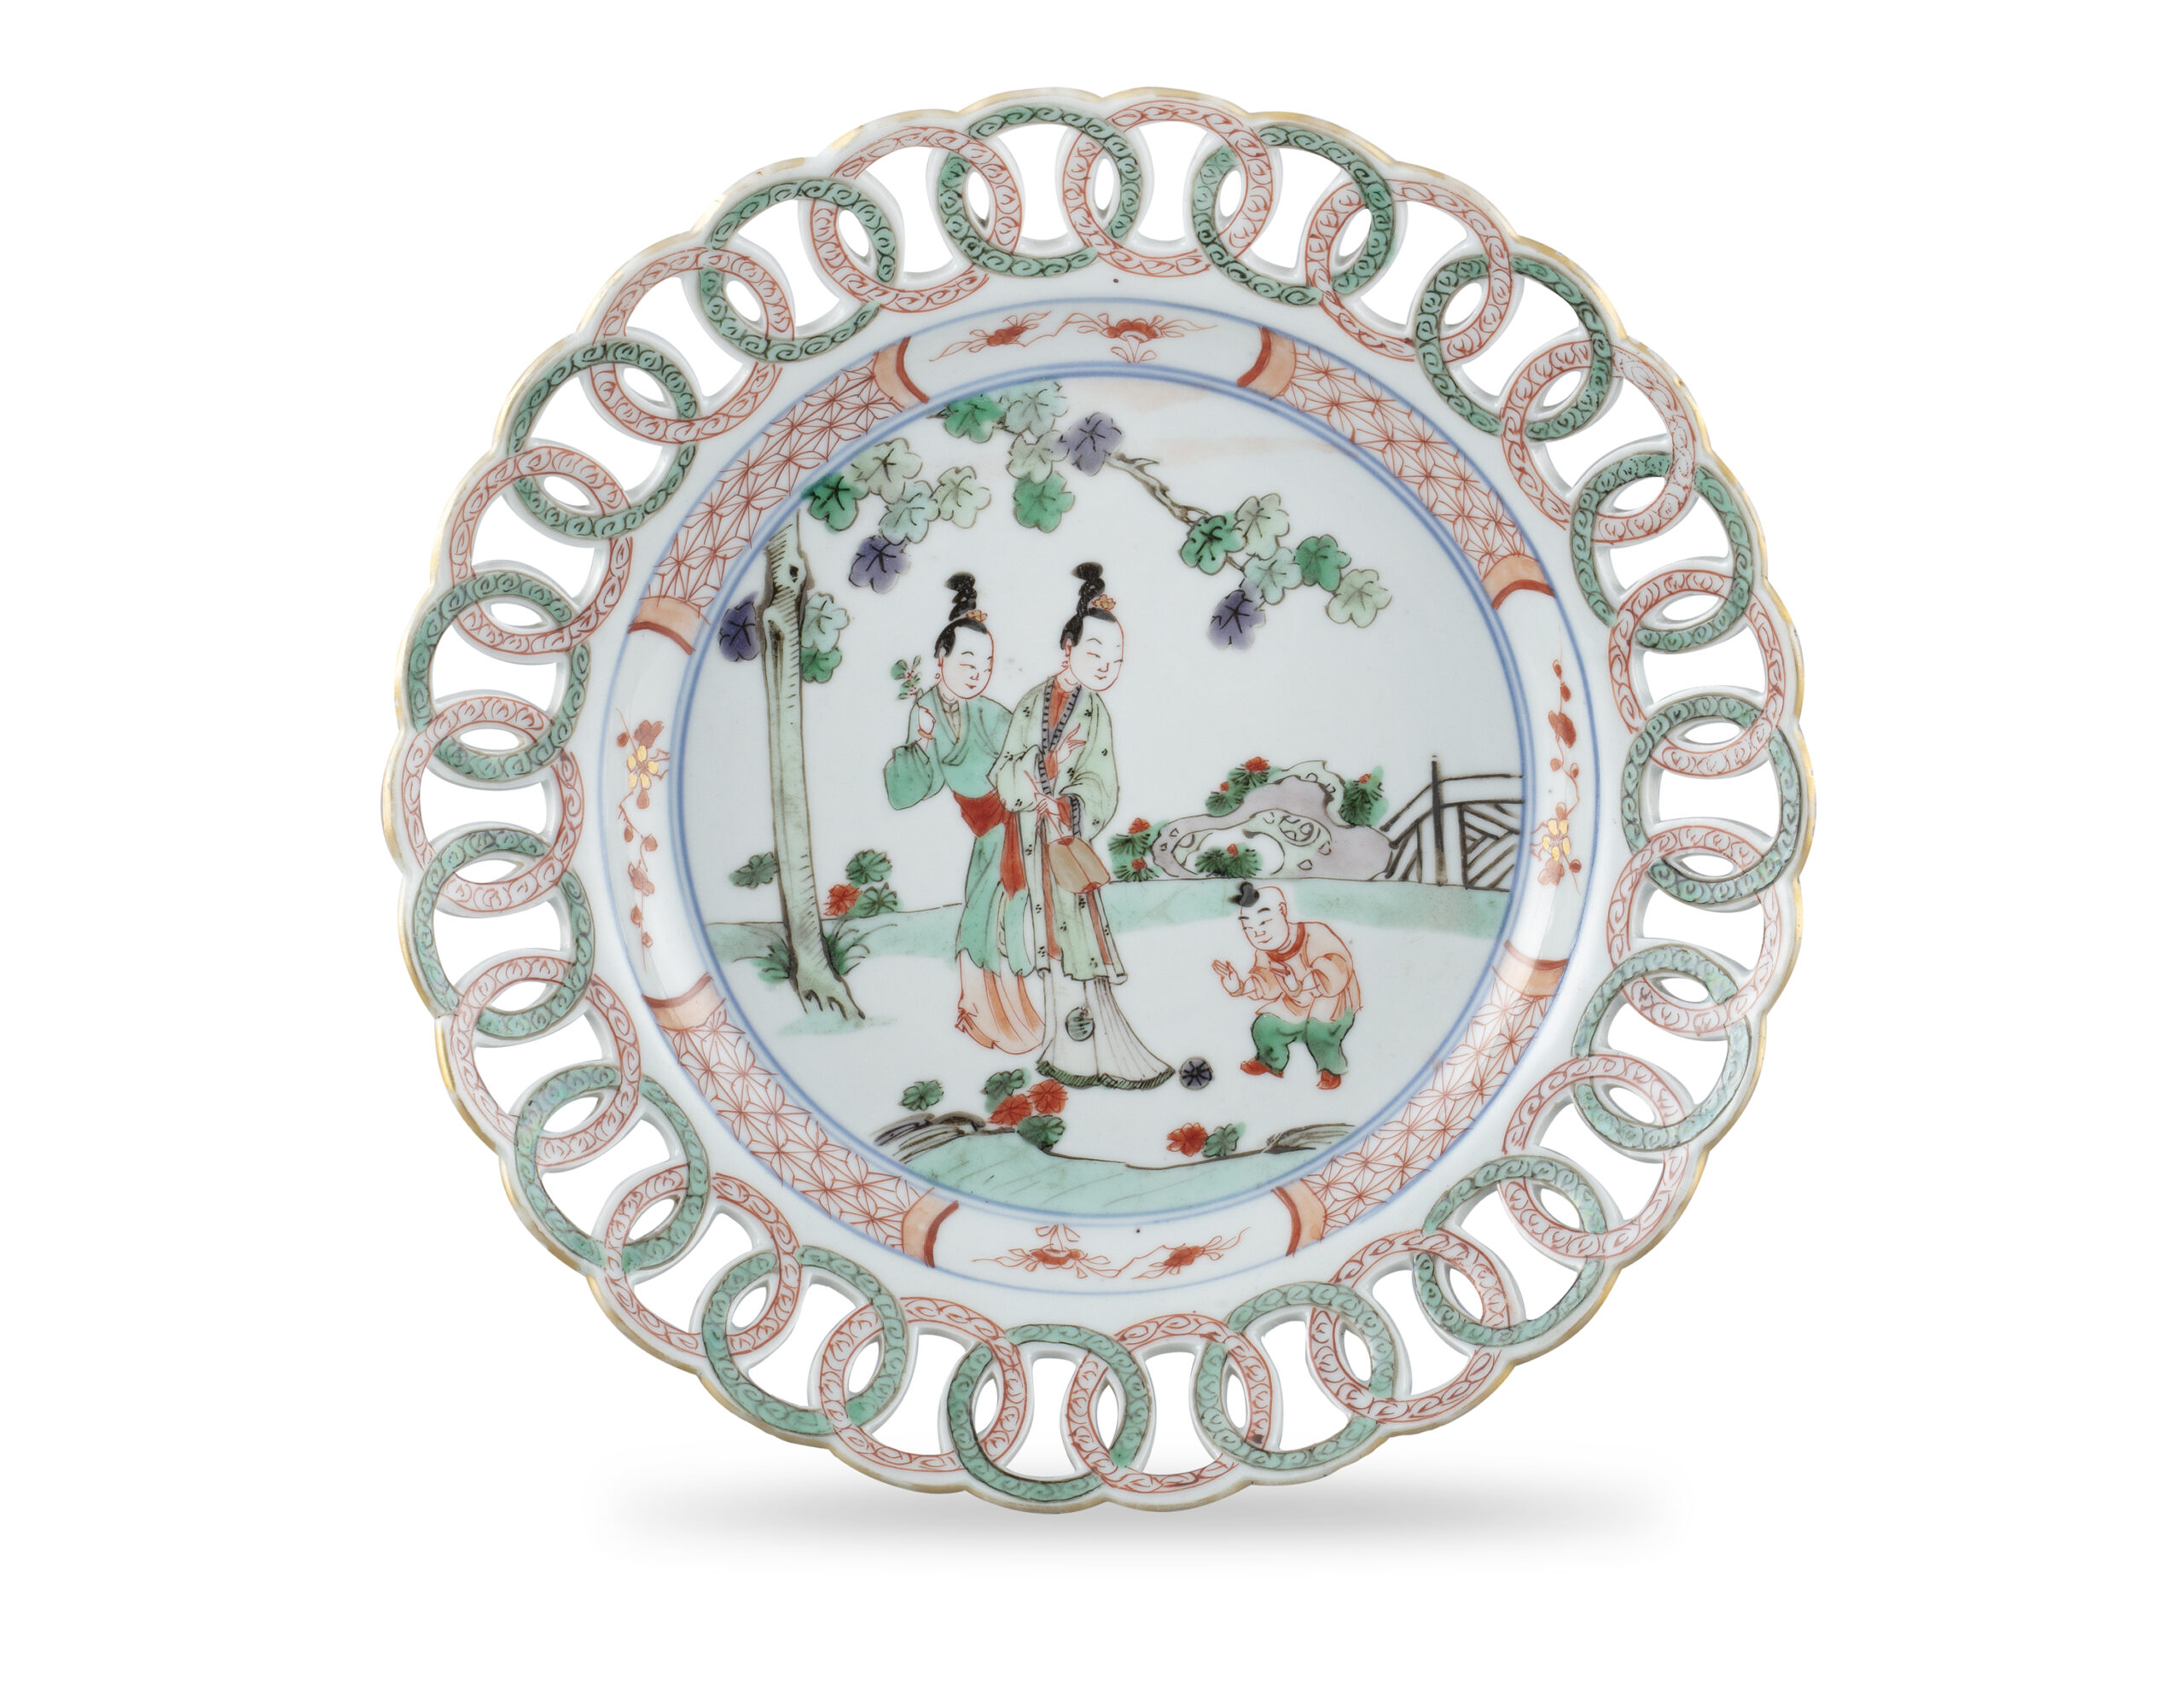 A FAMILLE VERTE RETICULATED WING DISH, CHINA, QING DYNASTY, KANGXI PERIOD